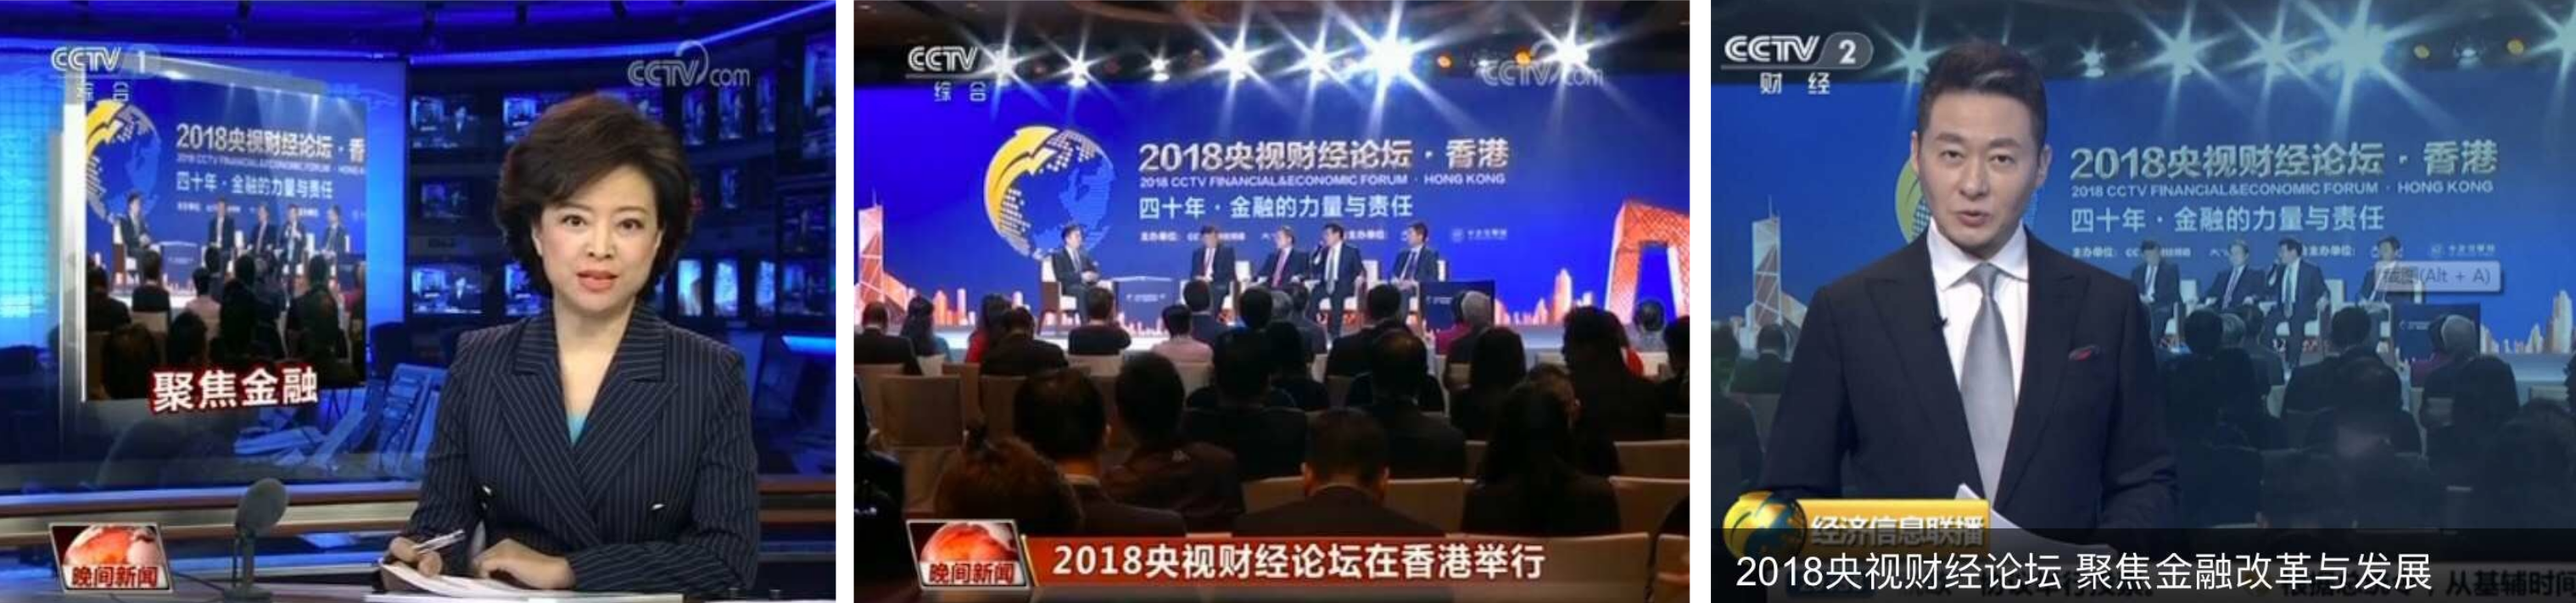 """""""2018 CCTV Financial and Economic Forum Hong Kong · B2 Fintech Global Summit"""" is covered by CCTV 1 & 2."""